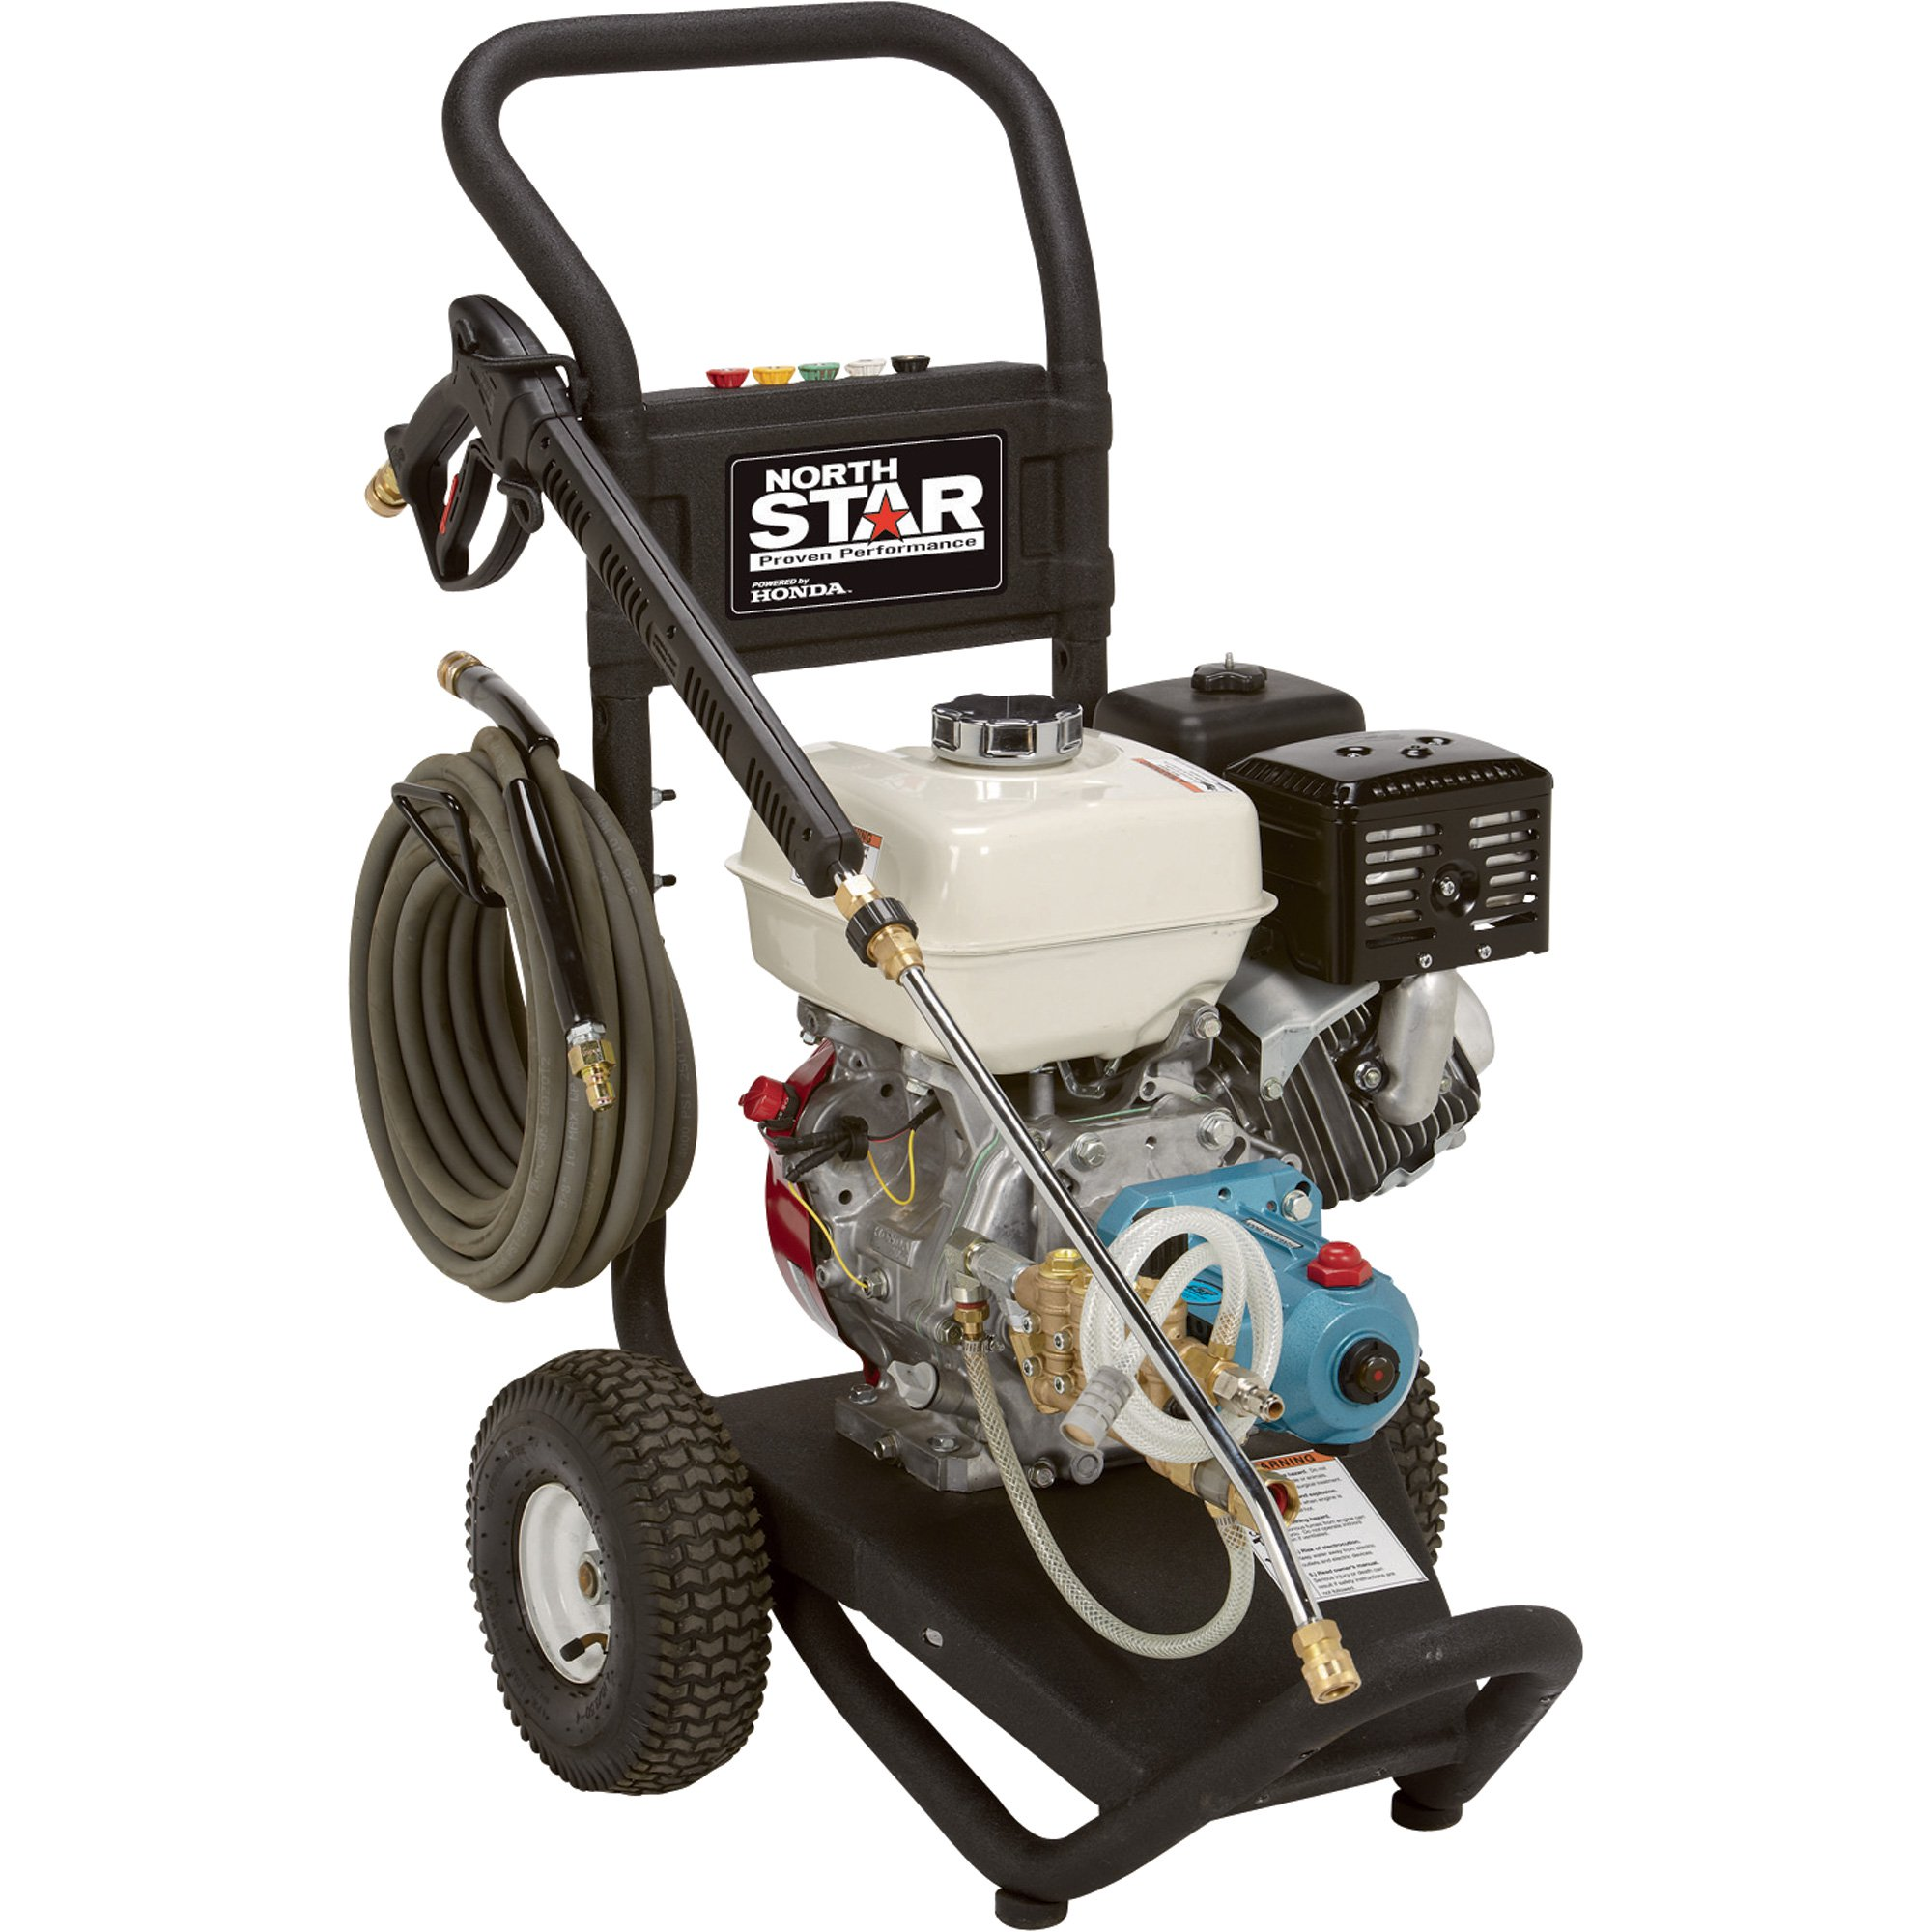 NorthStar 15781820 - Gas Cold Water Pressure Washer - 3300 PSI, 3.0 GPM, Honda Engine - FREE SHIPPING